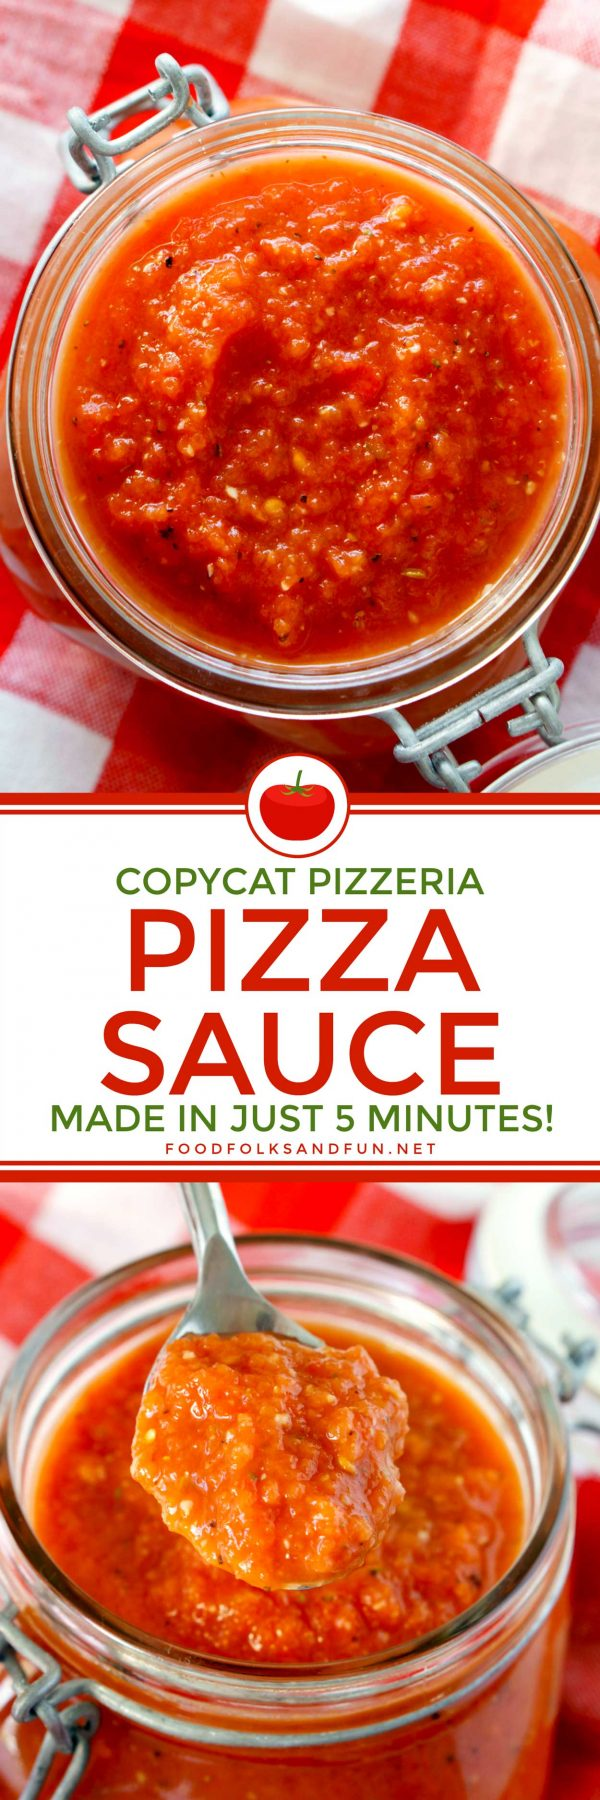 copycat pizzeria pizza sauce recipe food folks and fun